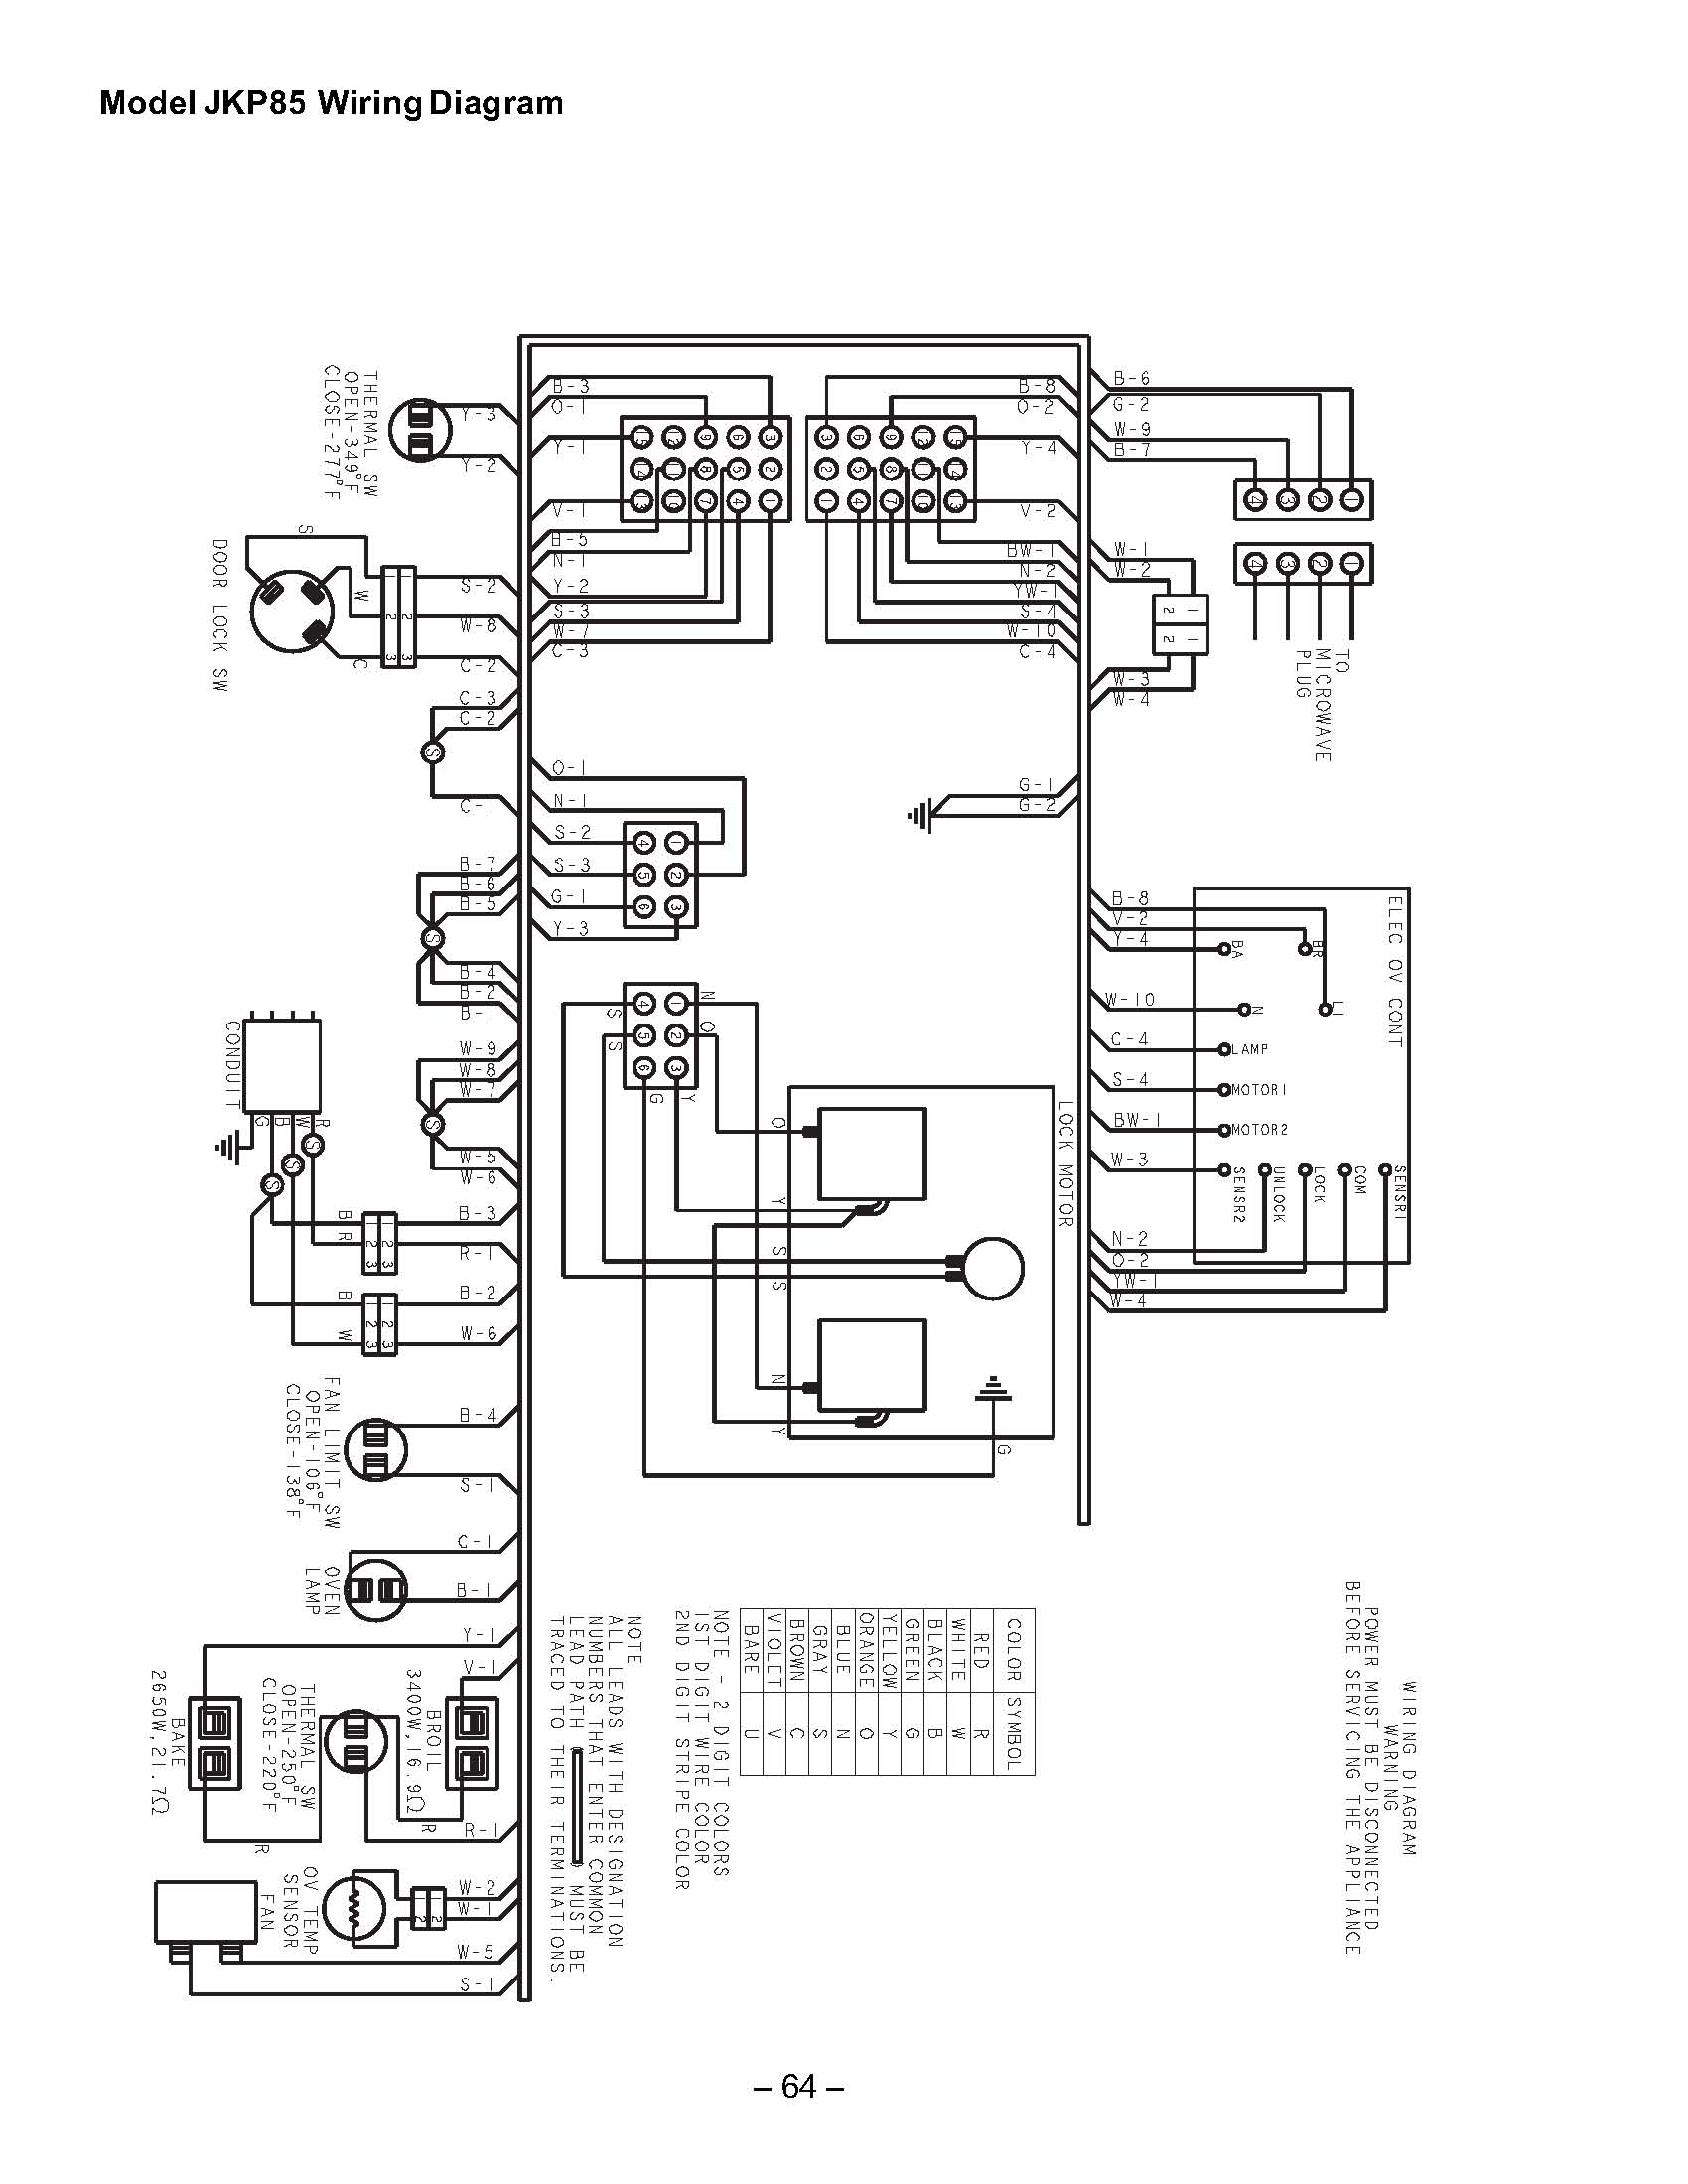 switch oven wiring diagram model 363 9378880 library of wiring rh jessascott co